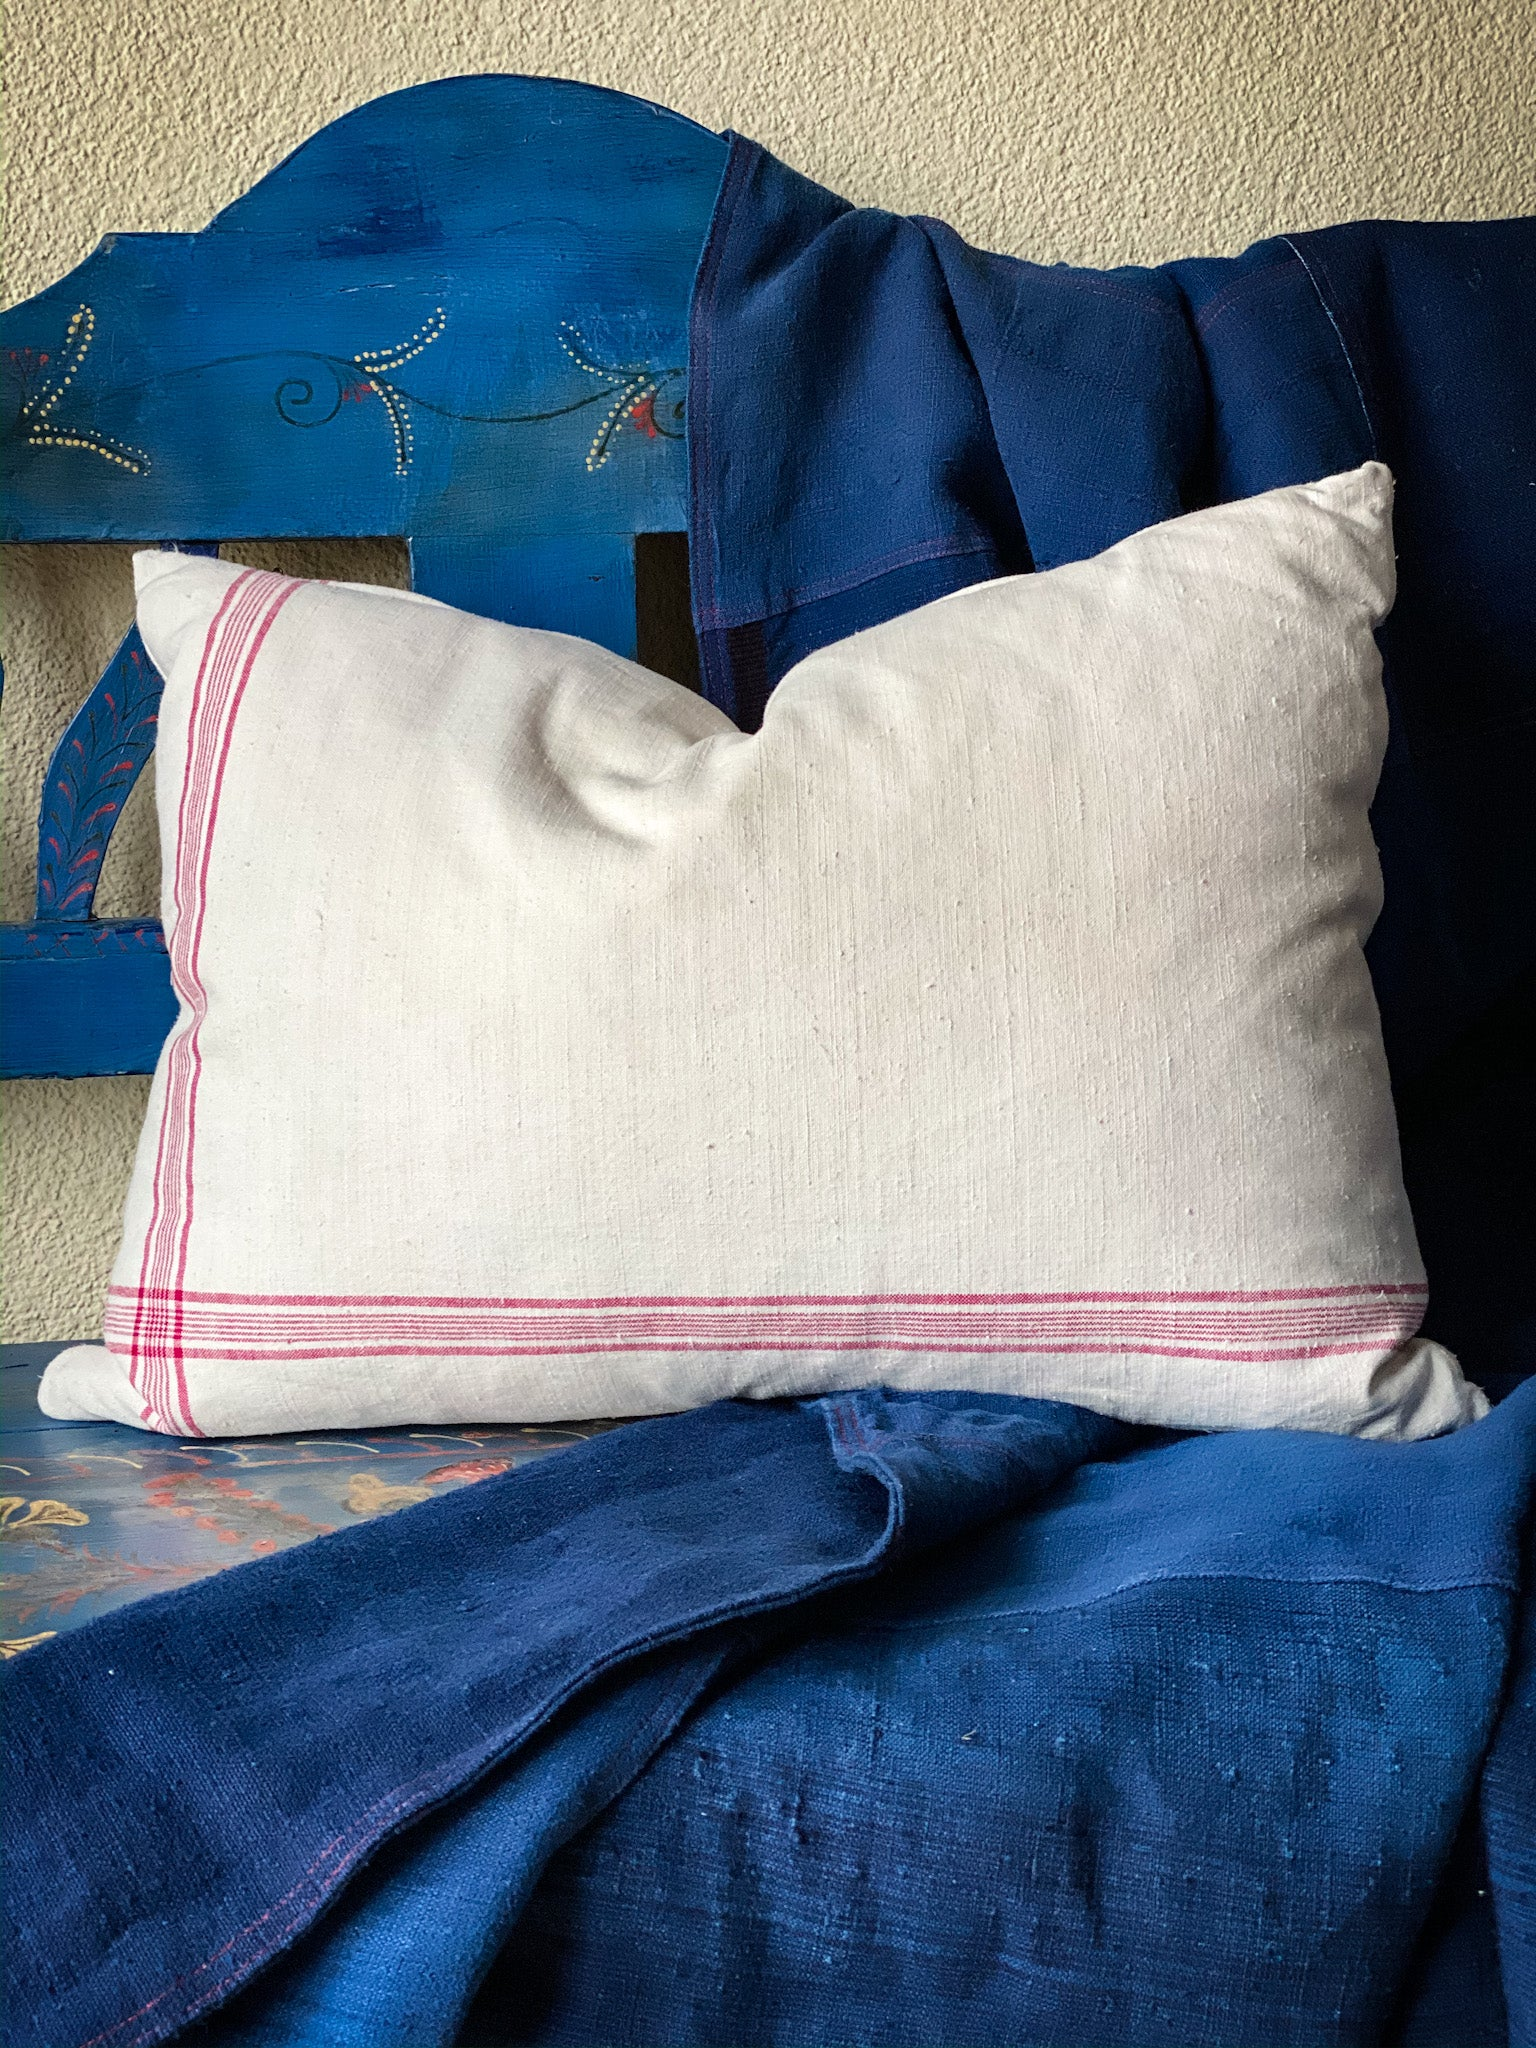 Pillow: Handwoven antique Hungarian hemp - P030